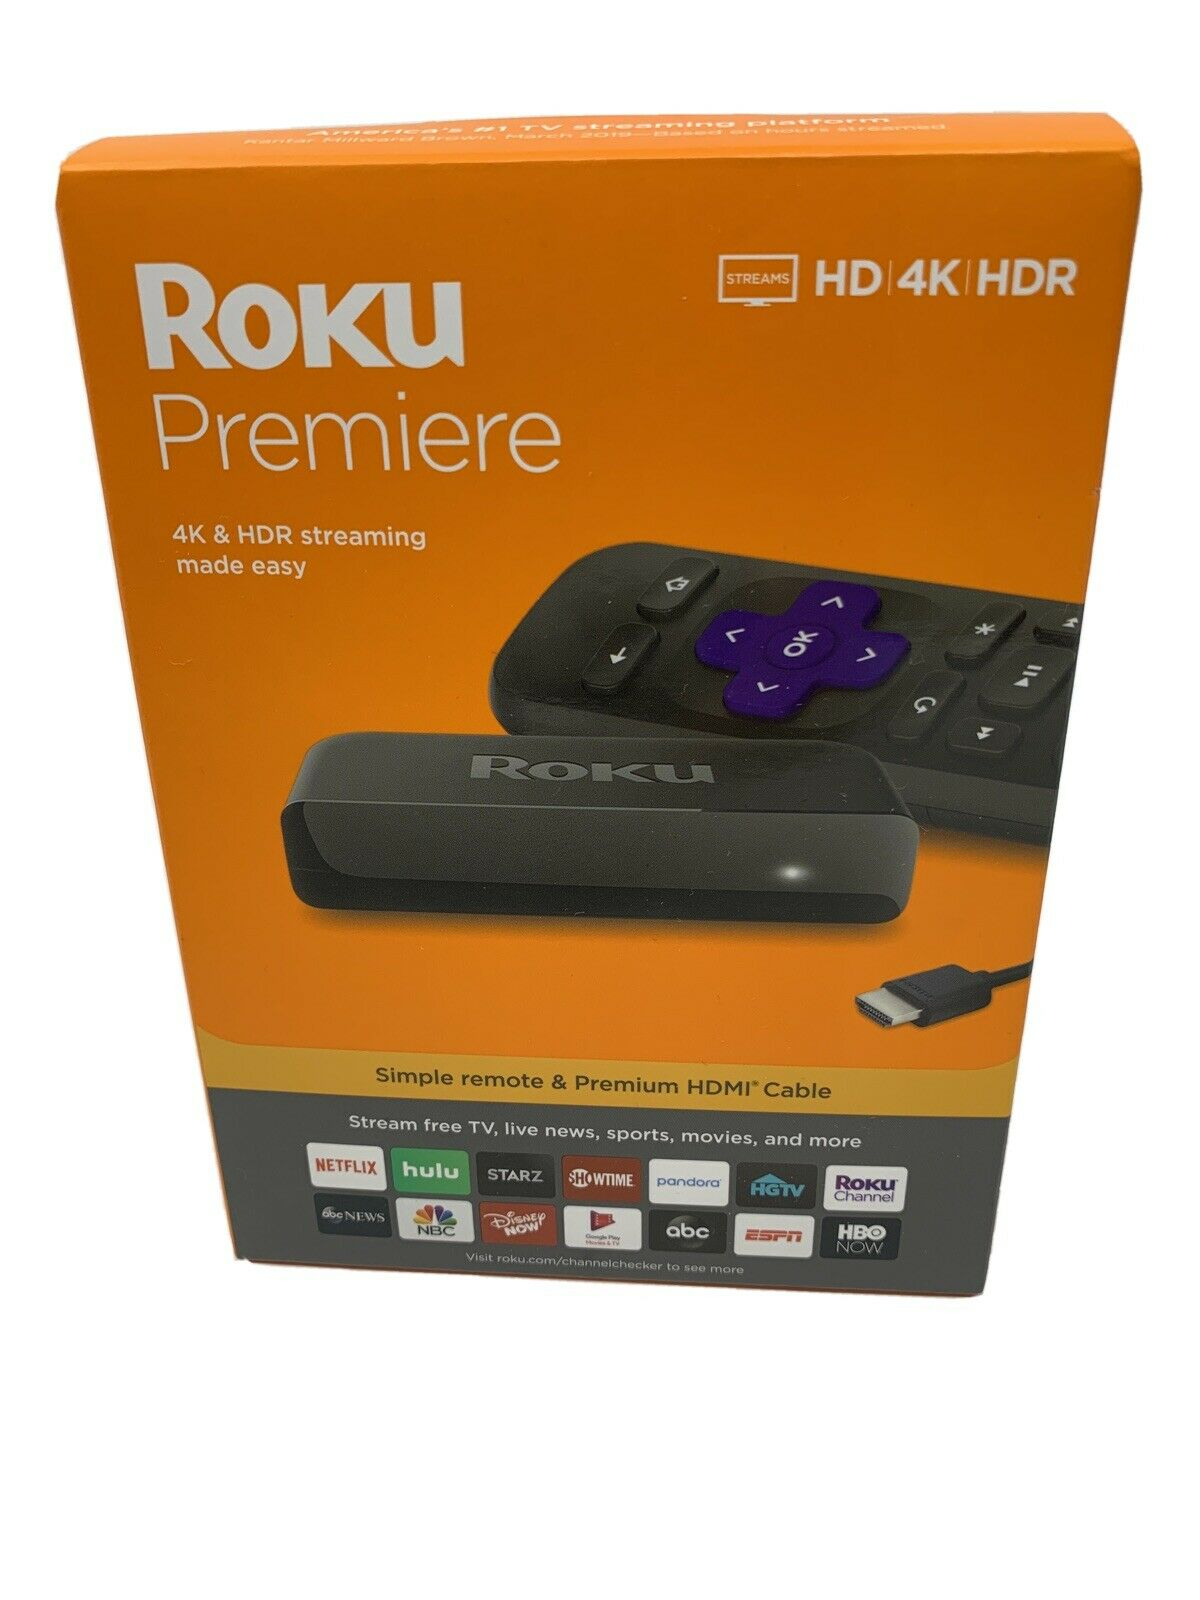 Roku Premiere 3920R 4K Streaming Media Player - Black - New - USA SELLER 3920r black media new player premiere roku seller streaming usa